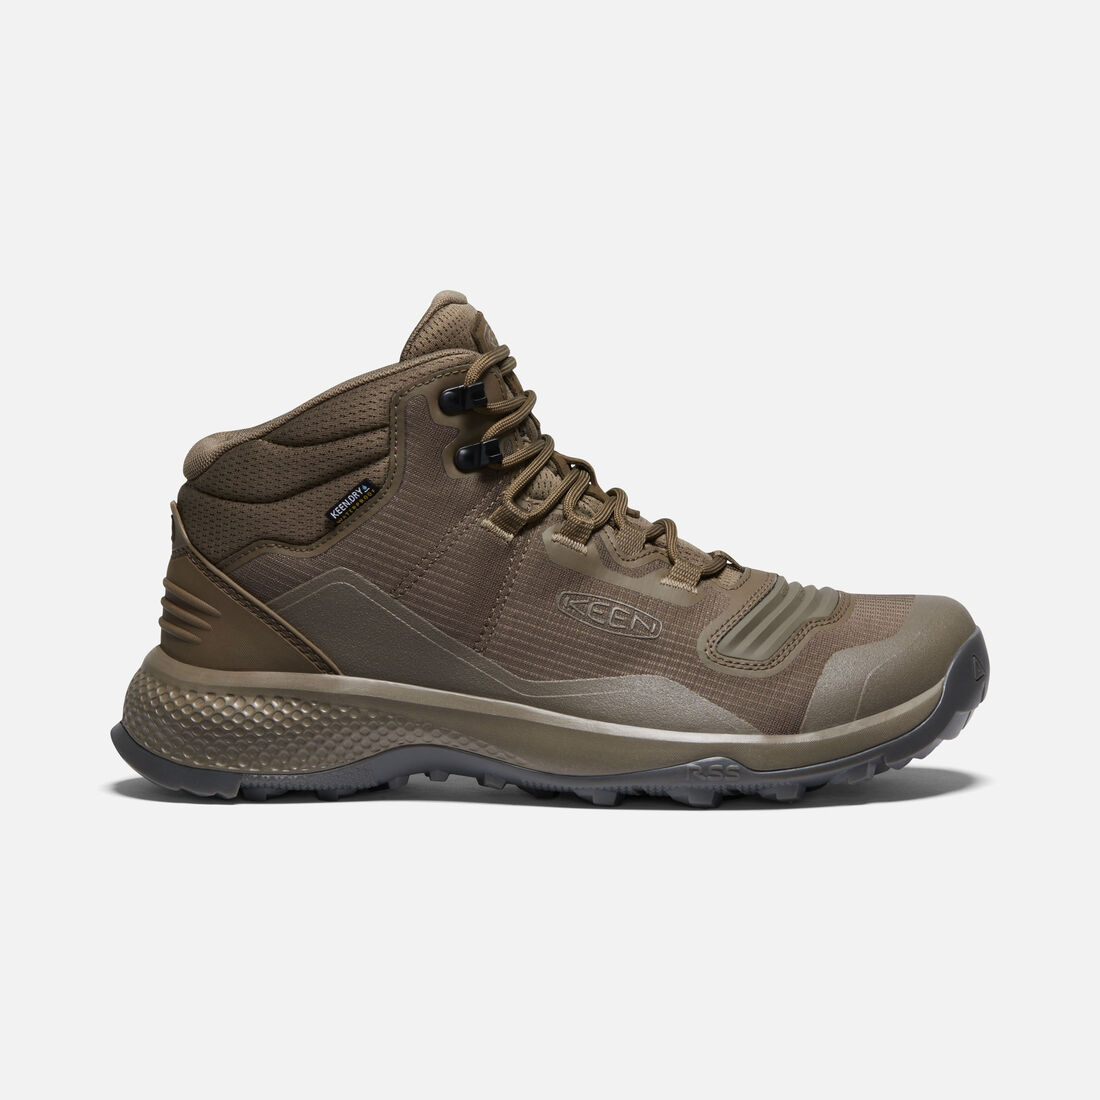 Men's Tempo Flex Waterproof Boot in Canteen/Canteen - large view.